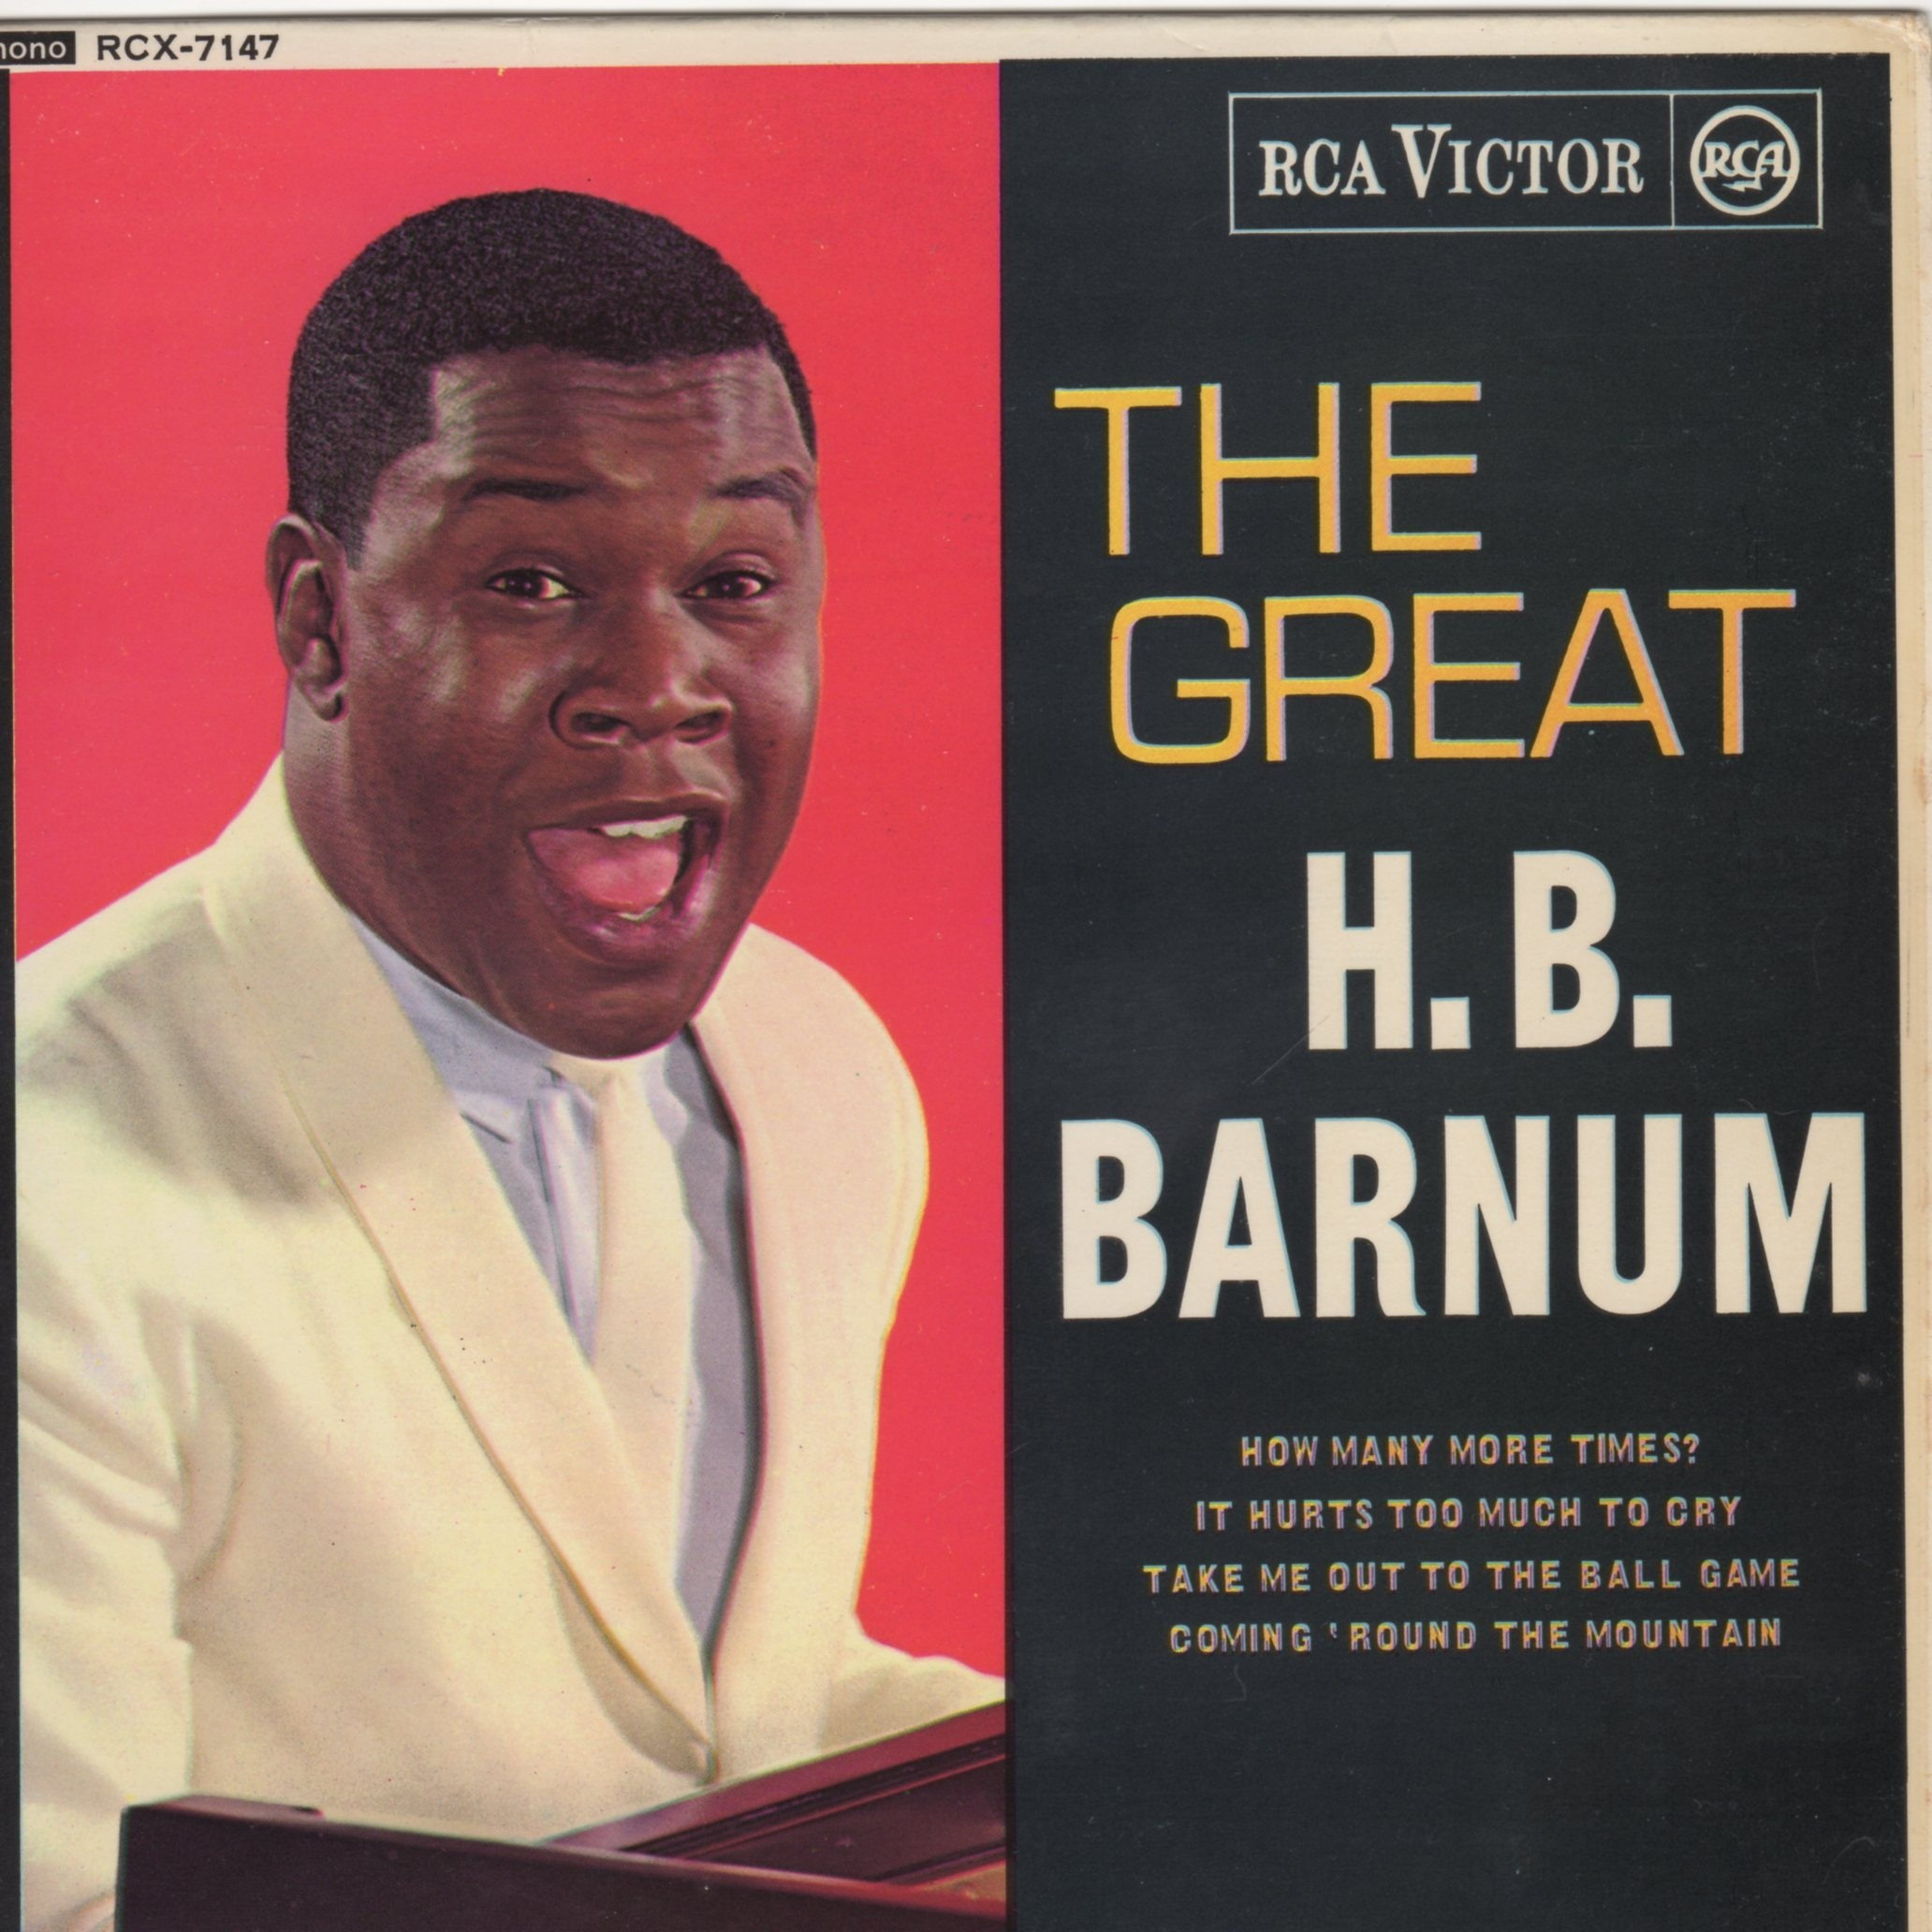 The Great HB Barnum EP